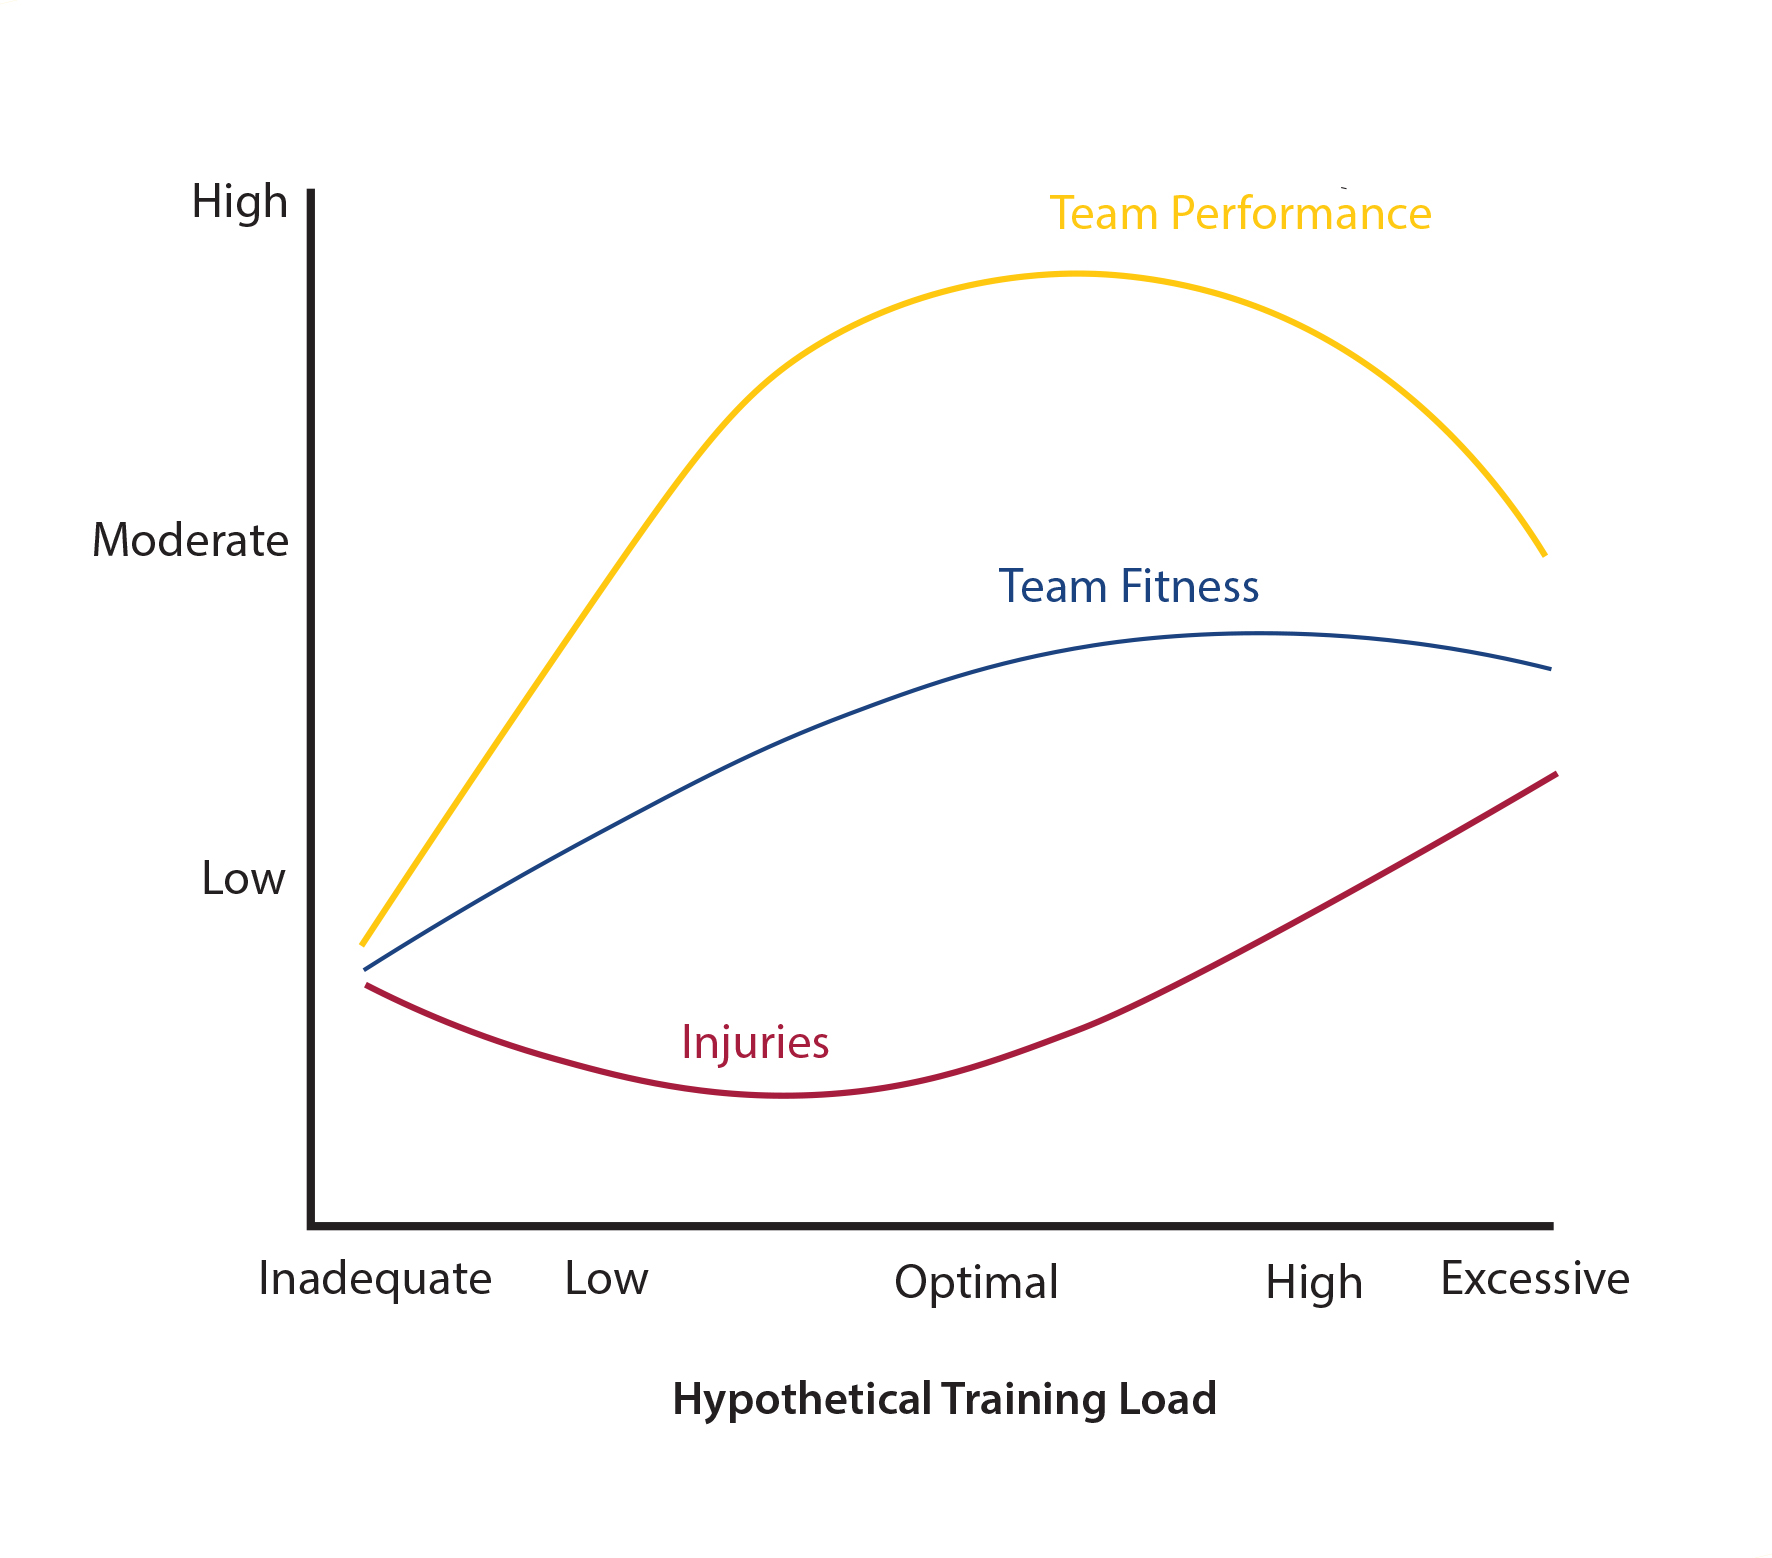 Figure 2. Relationship between training load and injury risk in team sports (Gabbett, 2004).